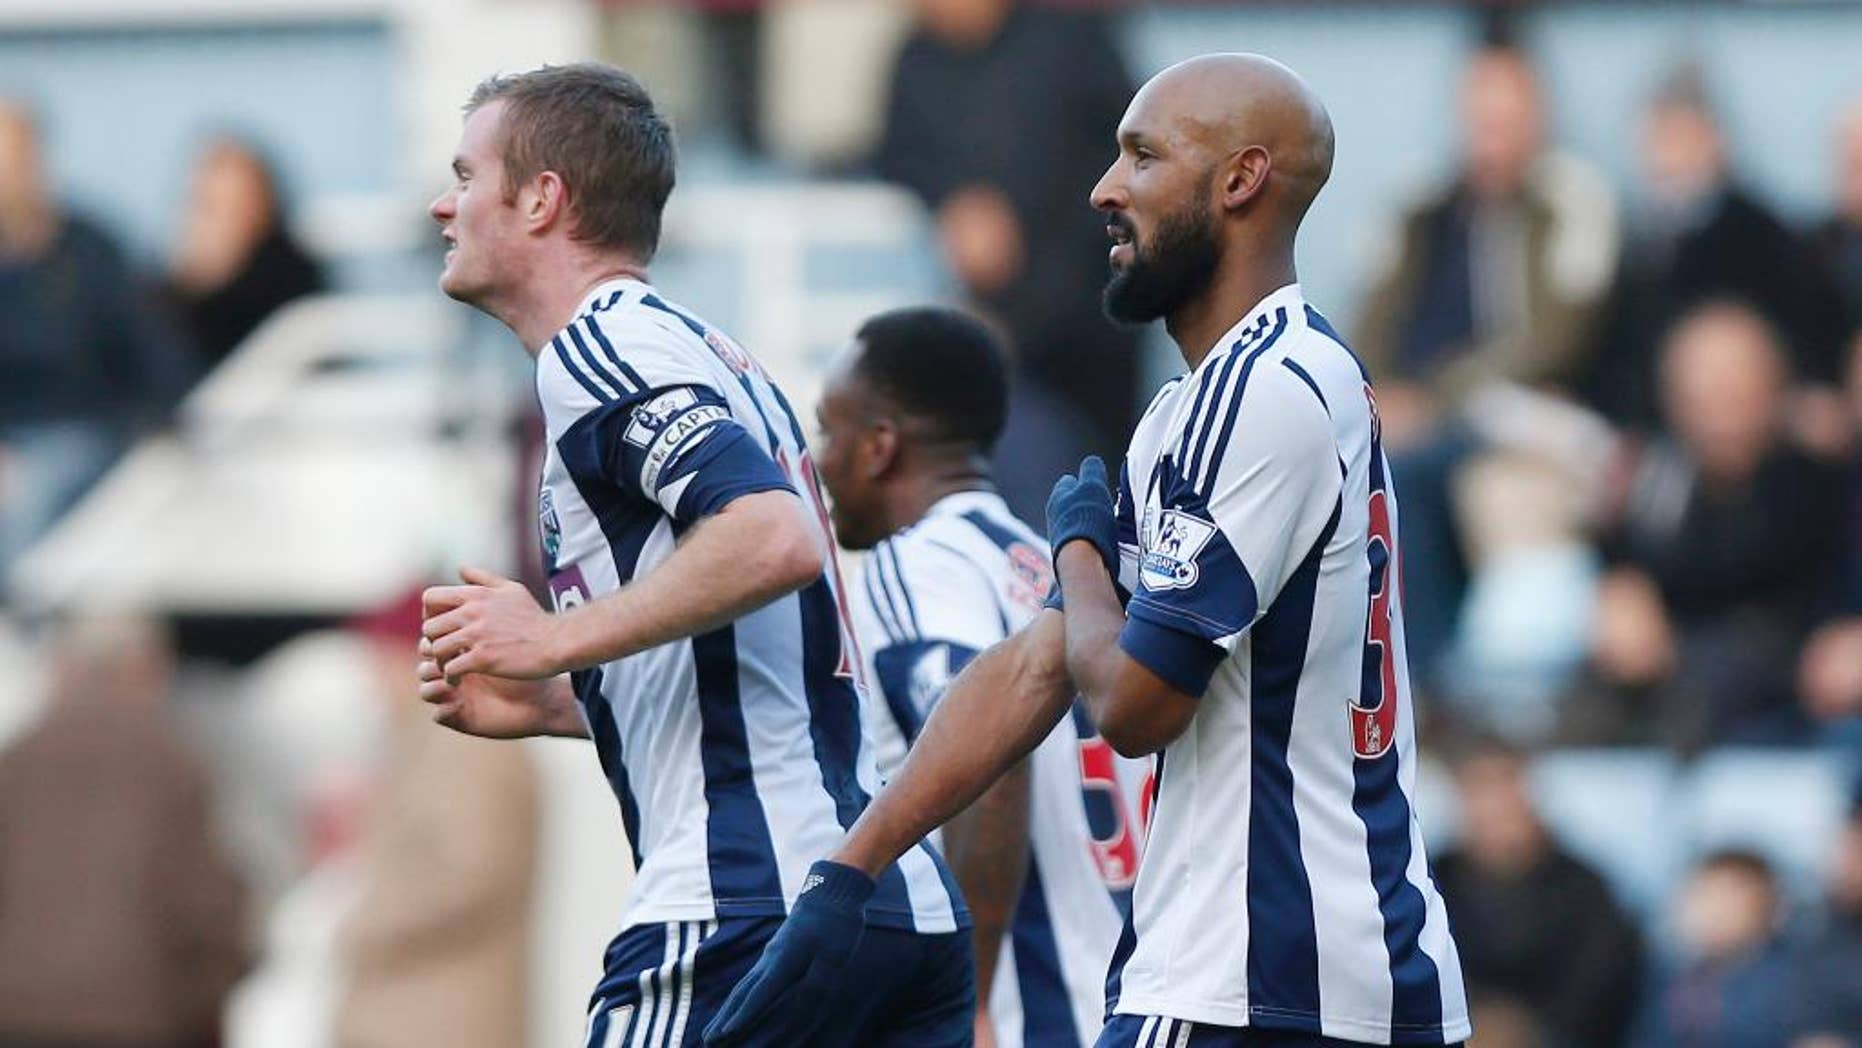 """FILE - In this Saturday, Dec. 28, 2013, file photo, West Bromwich Albion's Nicolas Anelka, right, gestures as he celebrates his goal against West Ham United during their English Premier League soccer match at Upton Park, London.  Anelka, was without a club since West Bromwich said it fired him in March 2014 following a five-match suspension for the racially aggravated goal celebration.  Former France striker Nicolas Anelka says he is joining Mumbai City FC in the new Indian Super League.The 35-year-old Anelka tweeted Monday Sept 15, 2014 """"I'm pleased to join Mumbai City FC & very exciting in joining Indian Super League."""" (AP Photo/Sang Tan, File)"""